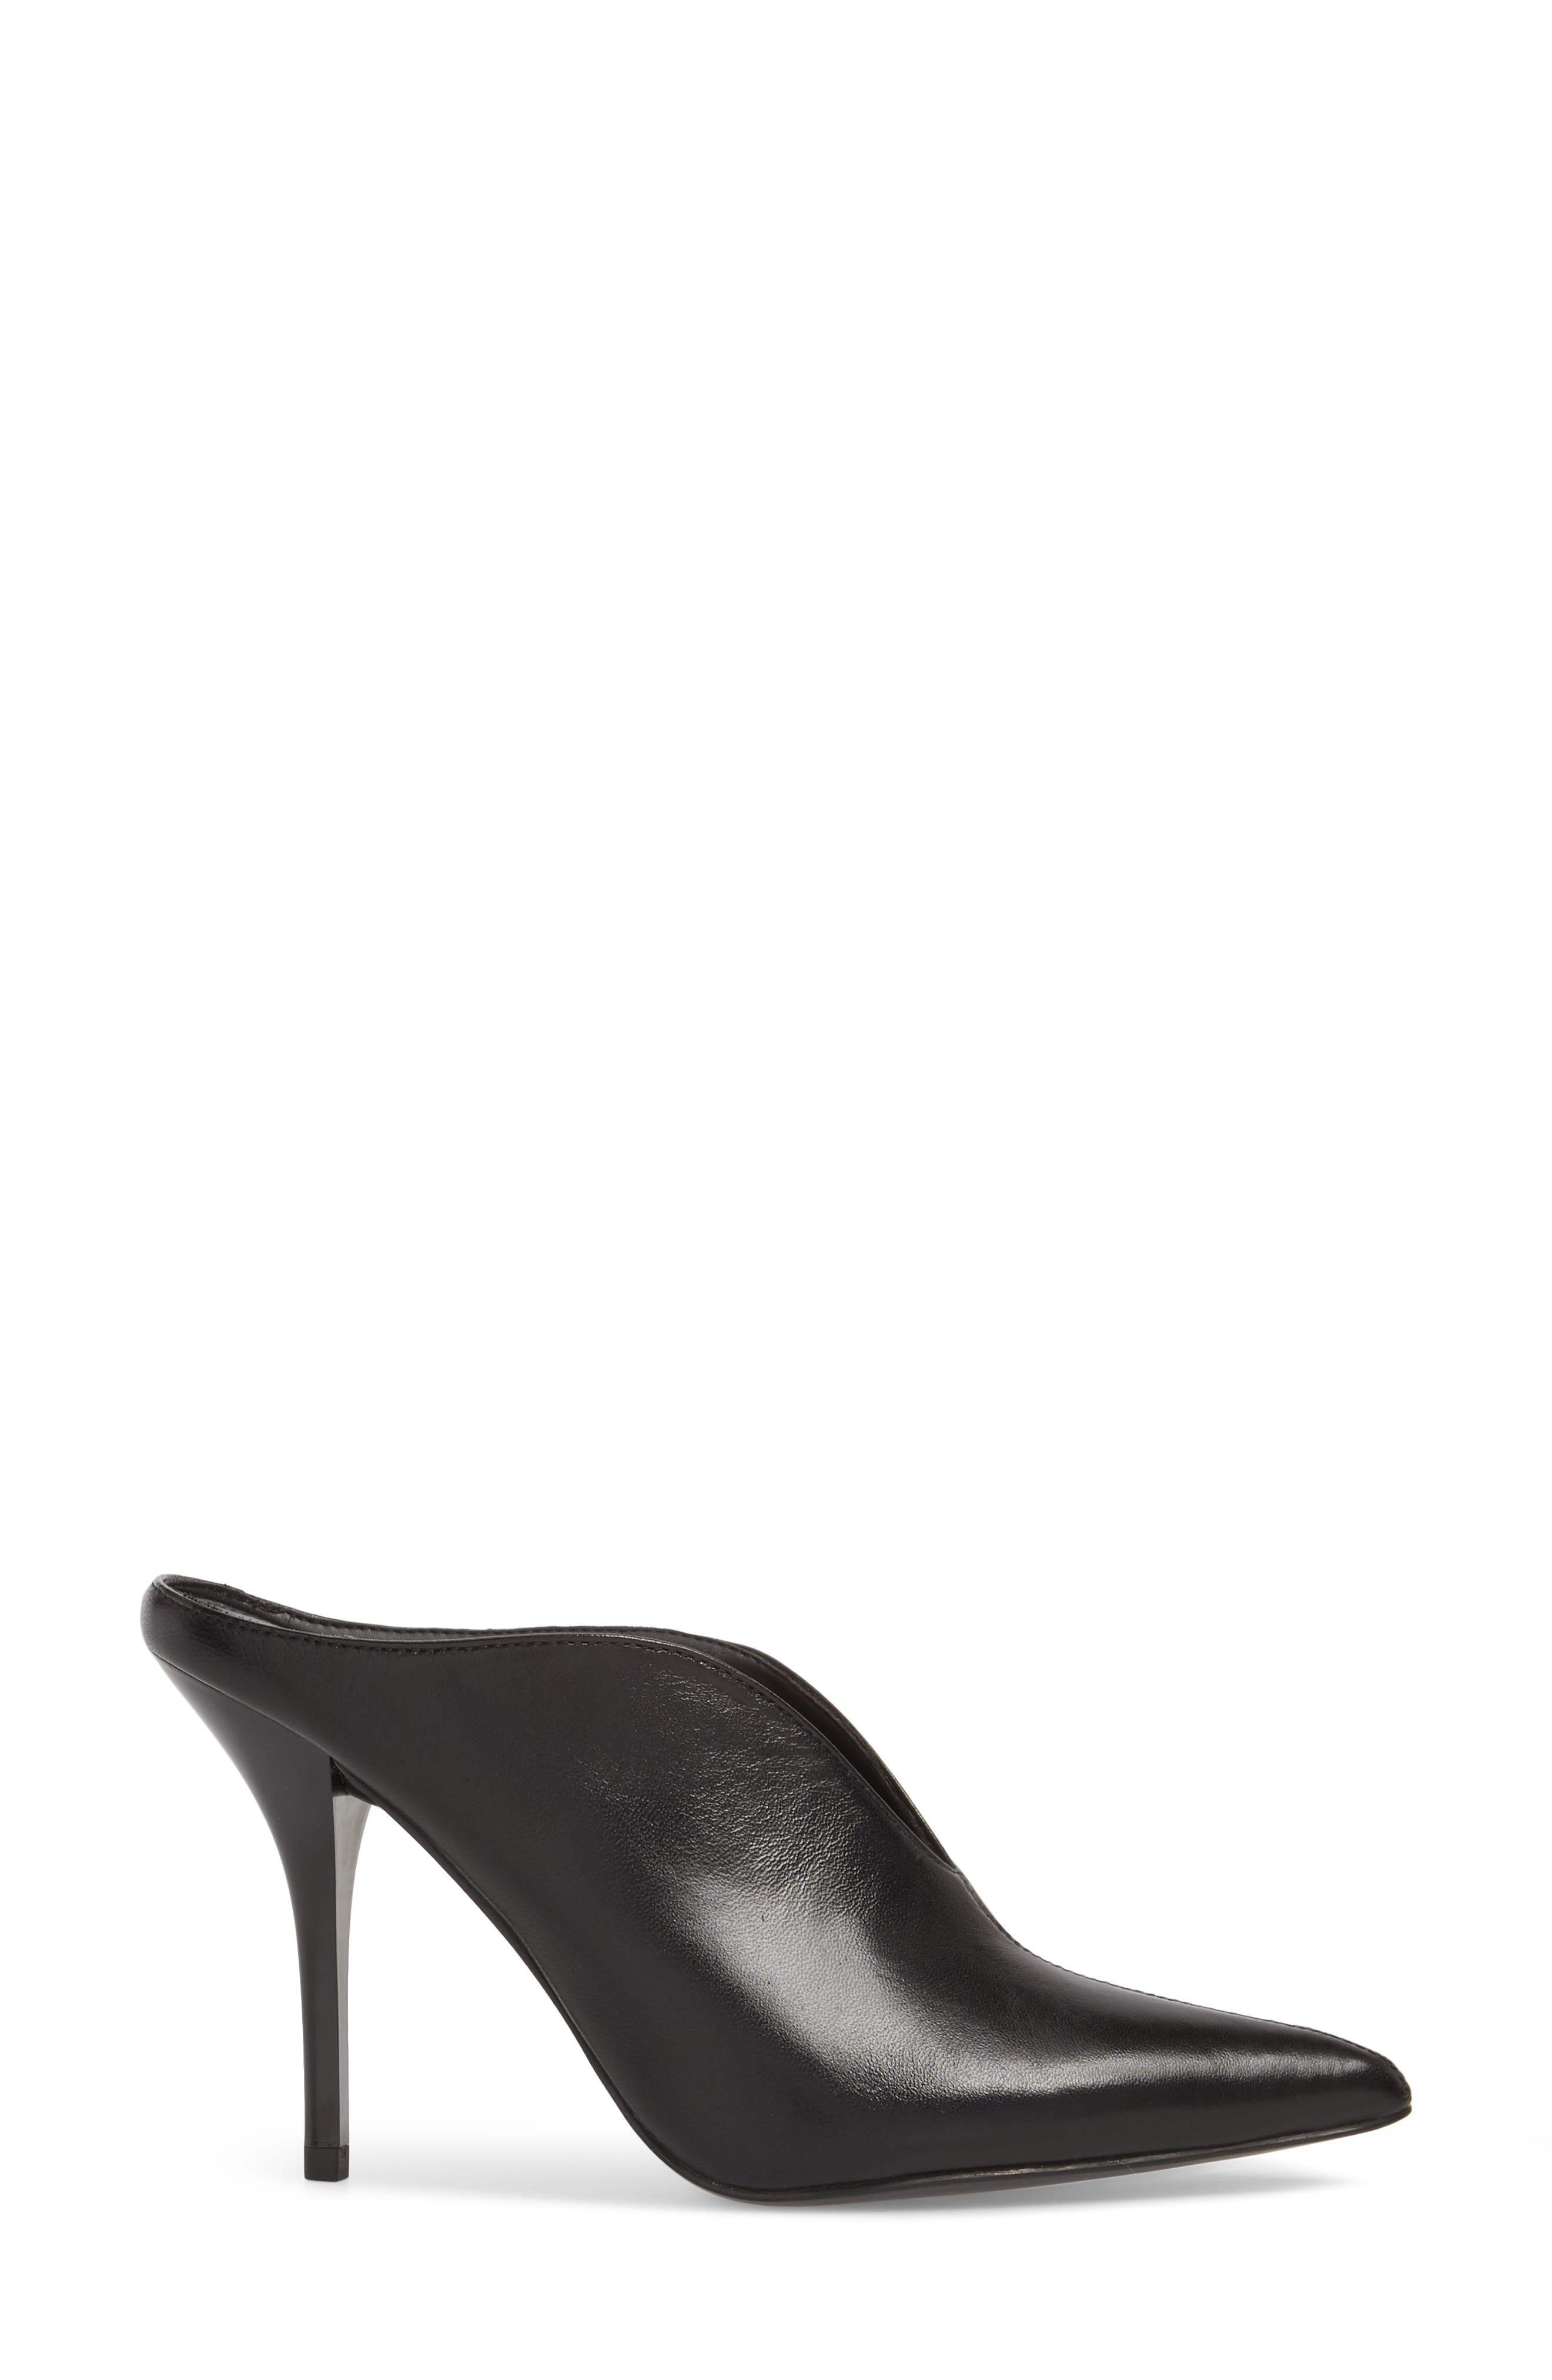 CALVIN KLEIN, Mallie Pointy Toe Mule, Alternate thumbnail 3, color, BLACK LEATHER